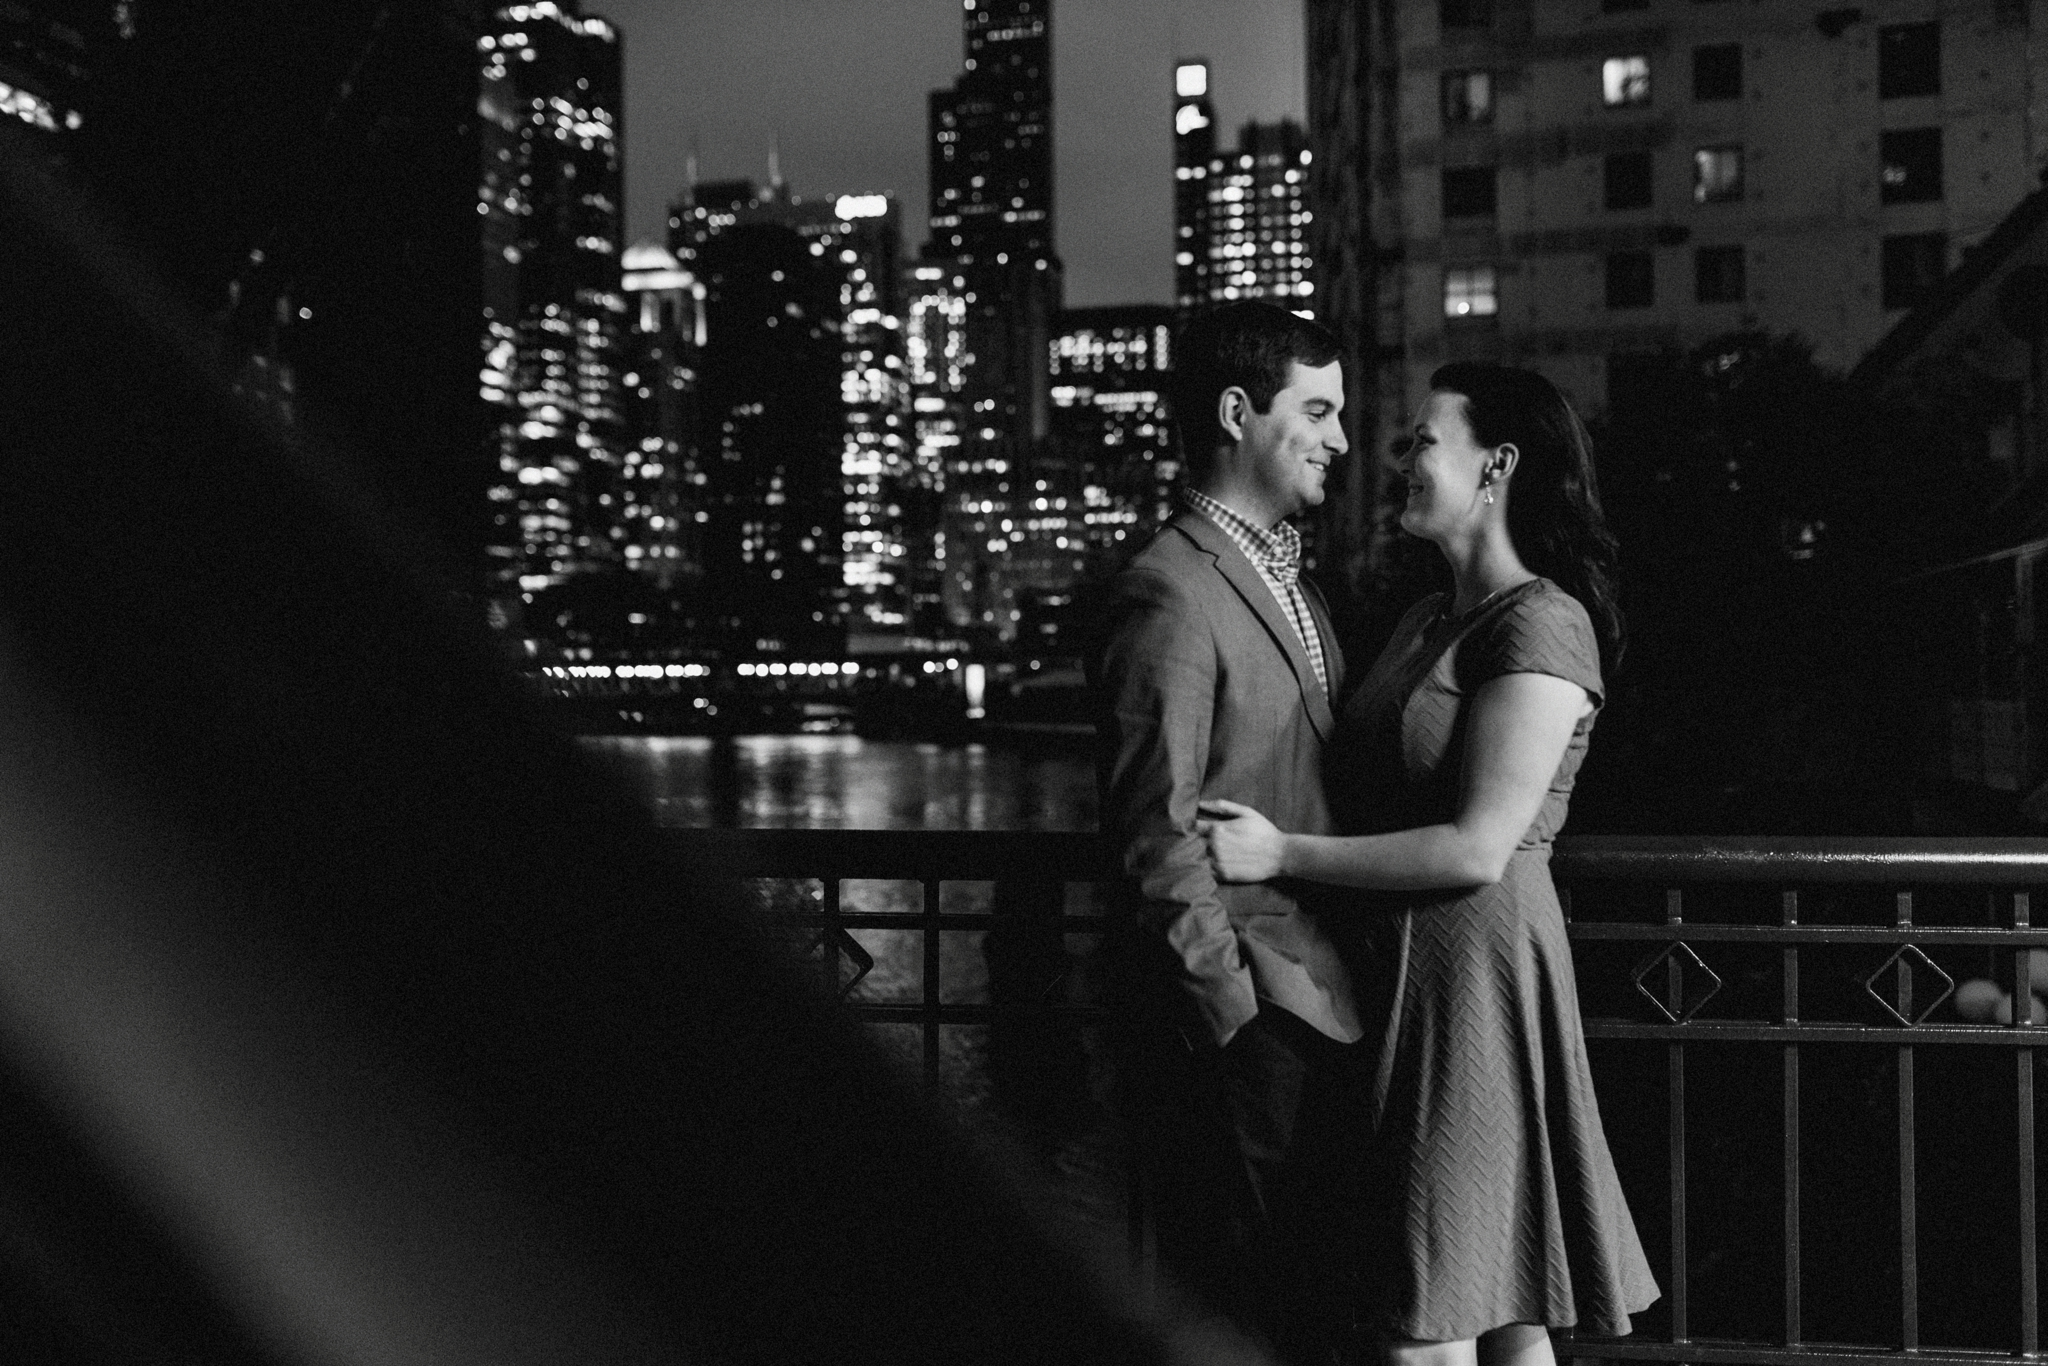 Lincoln_Park_Engagement_Photography-027.jpg